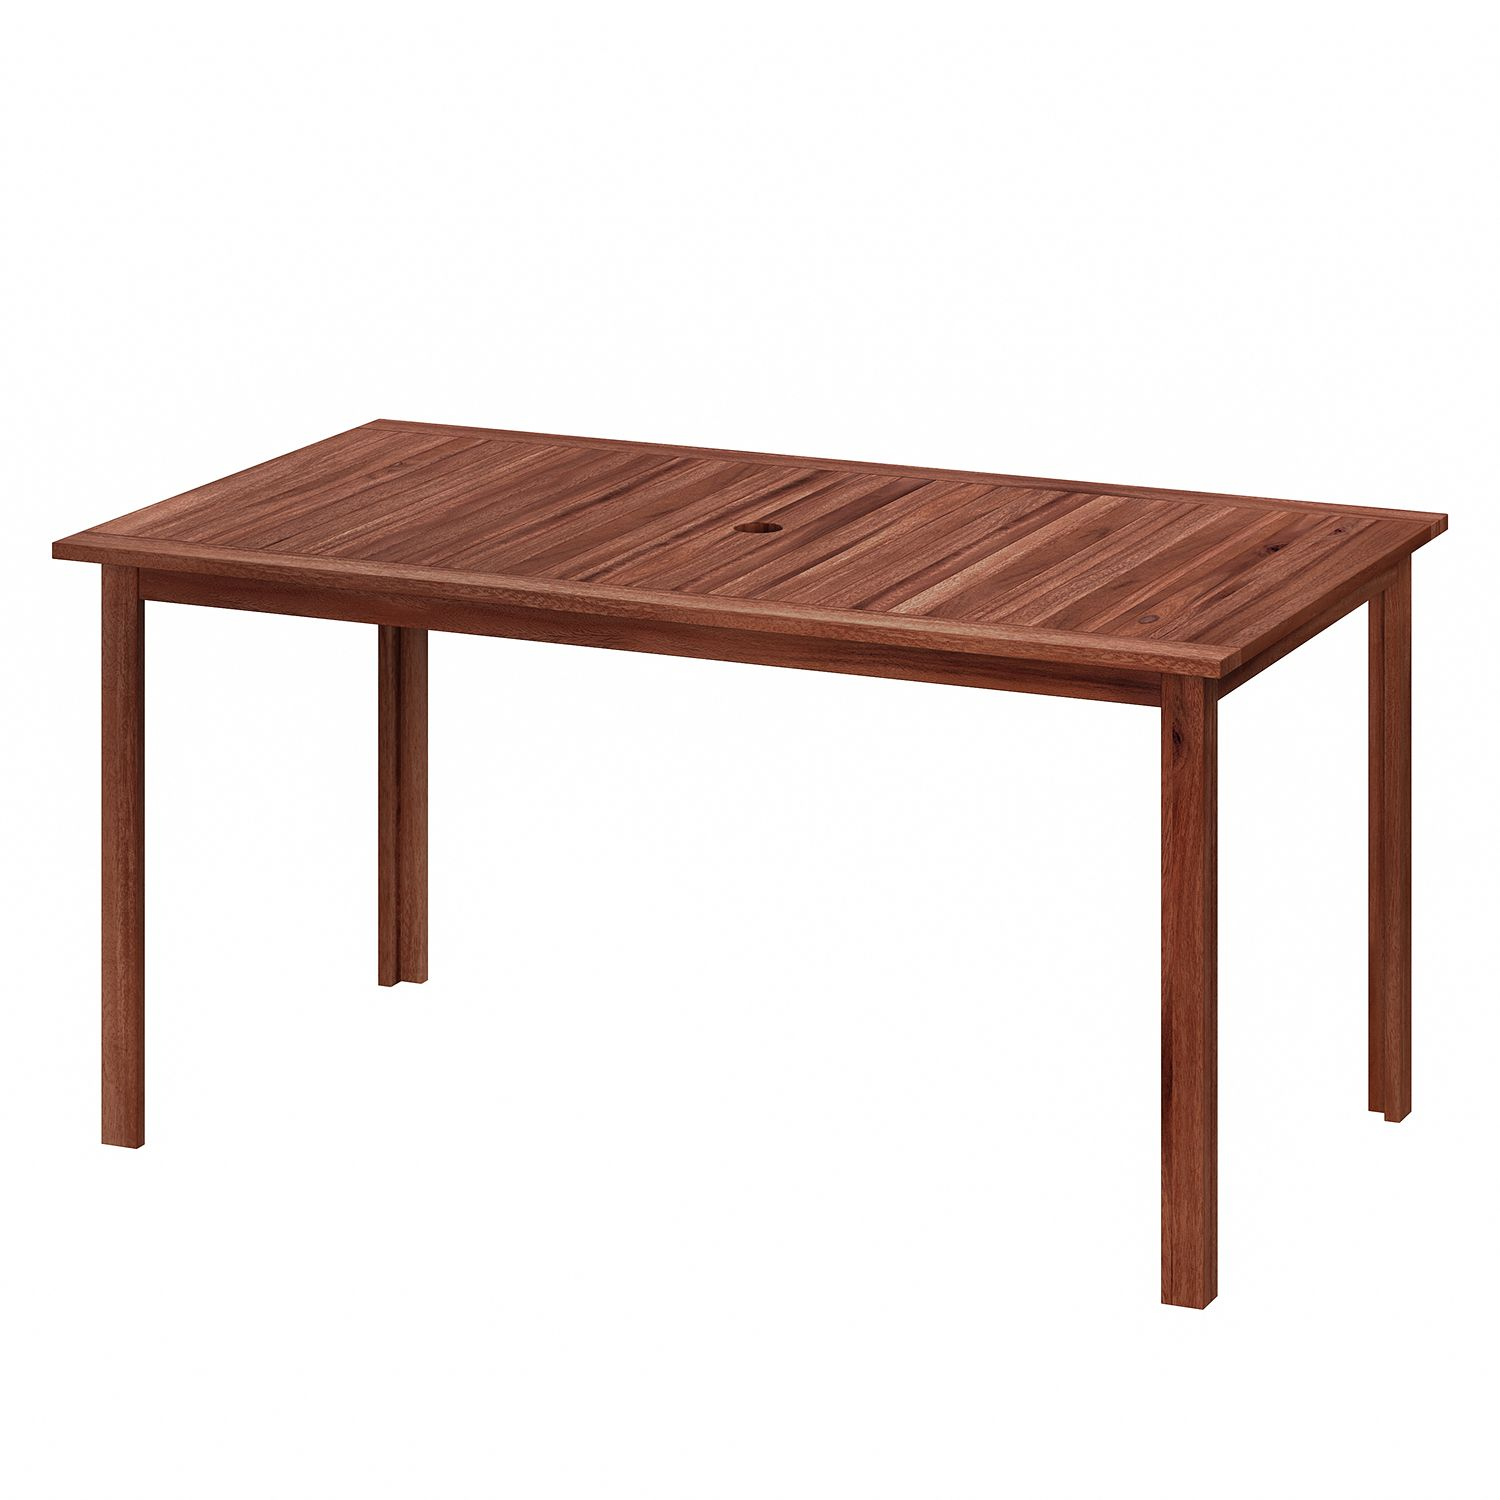 Table de jardin Mimo - Acacia massif - Marron, Ars Natura